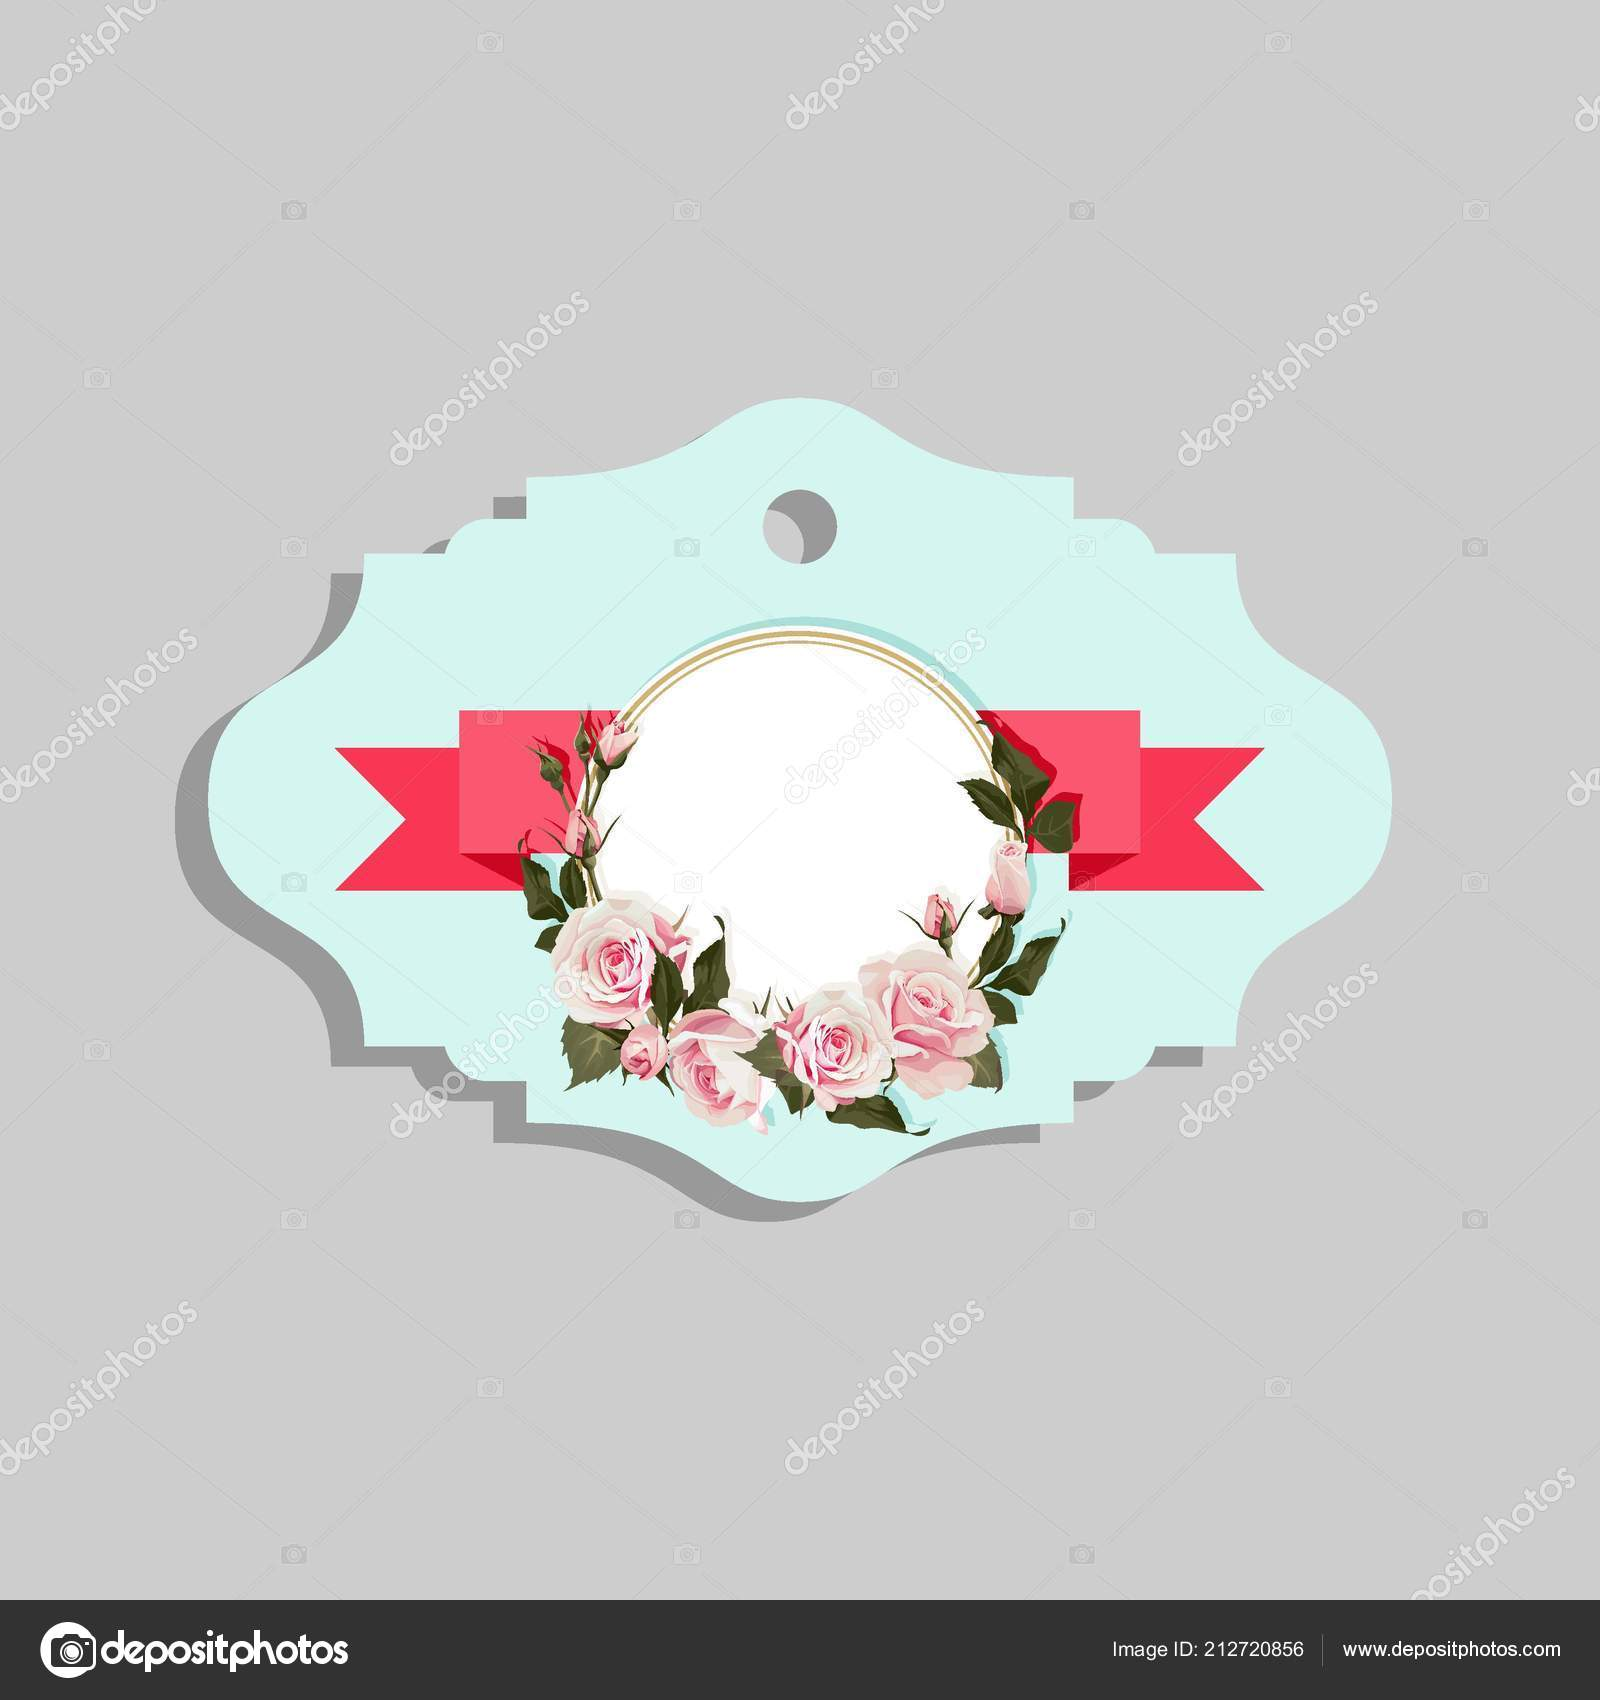 Images Decorative Shapes Clip Art Flowered Gift Tag